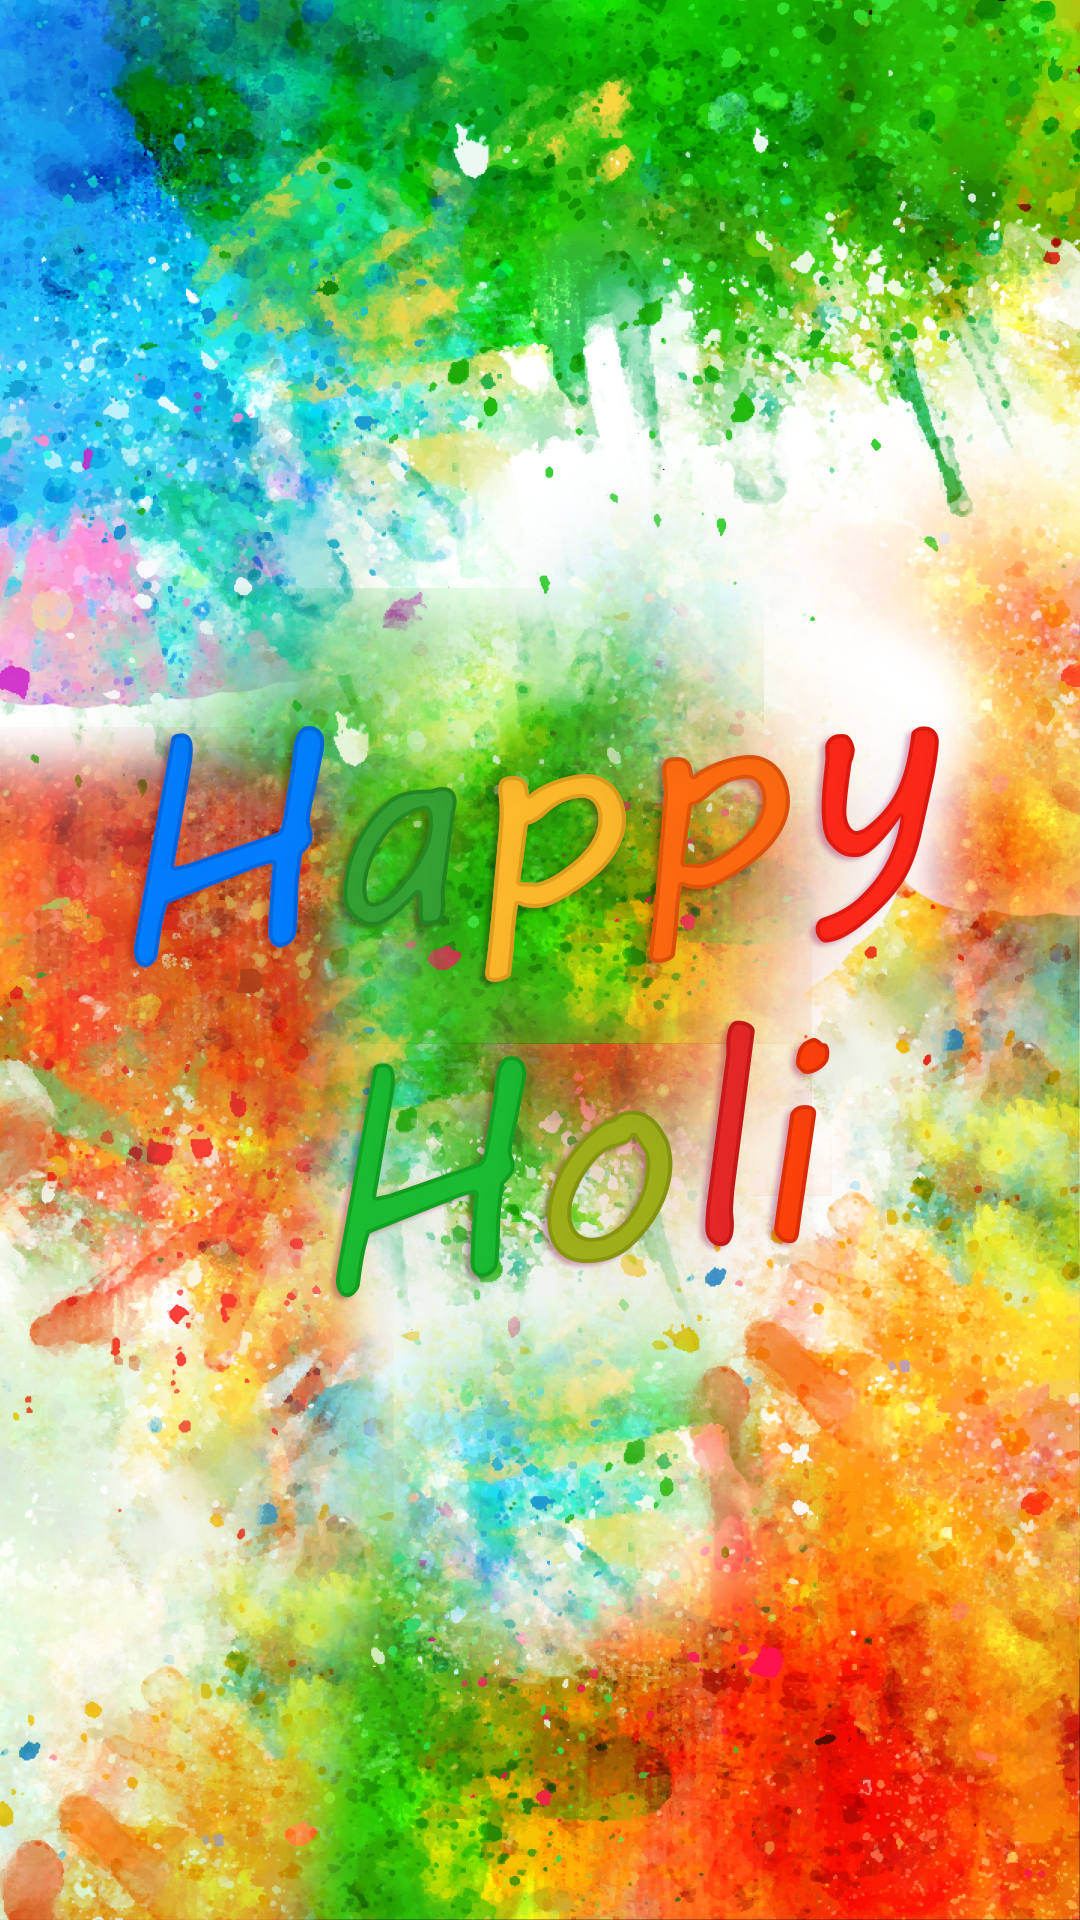 free hd happy holi phone wallpaper1189